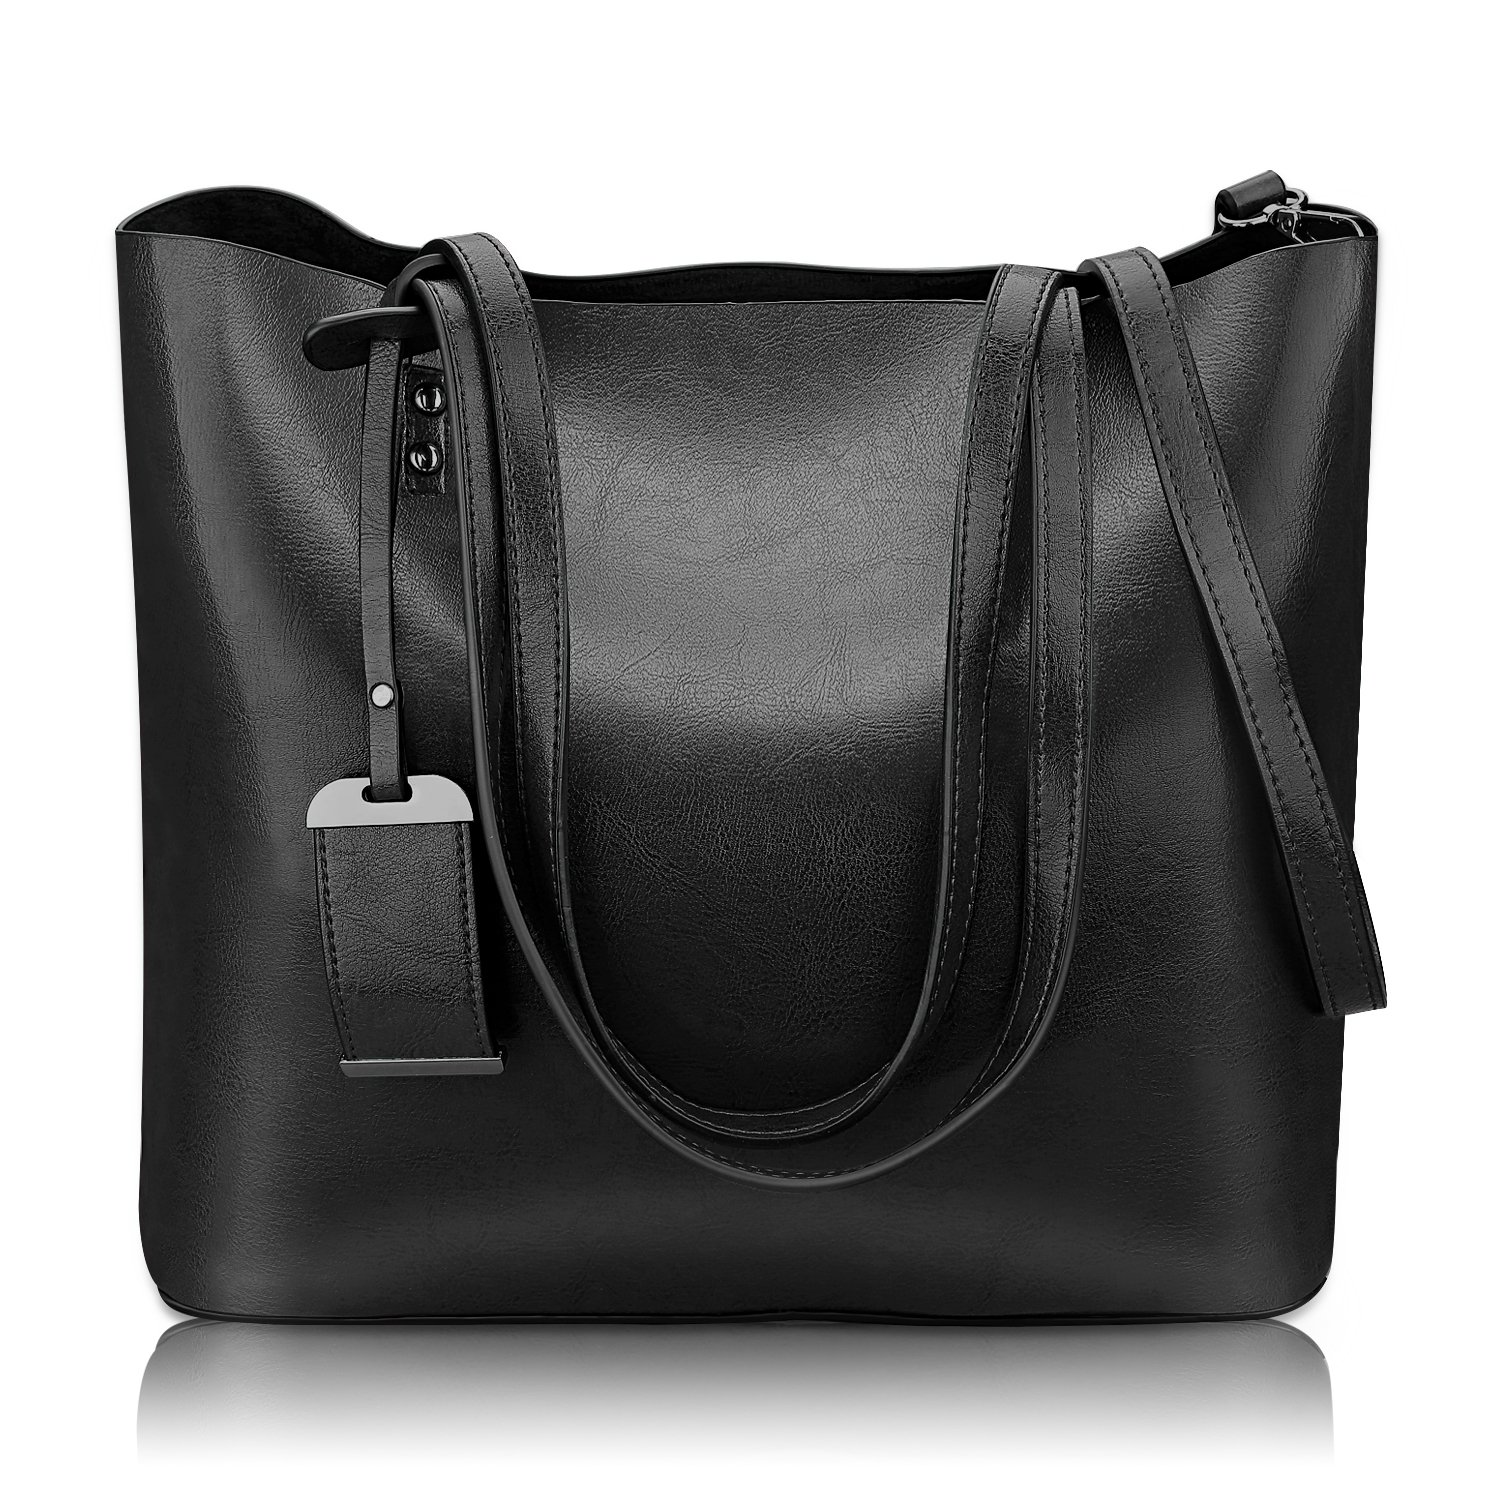 49e5b29cd7 Amazon.com  Women Top Handle Satchel Handbags Shoulder Bag Messenger Tote Bag  Purse (Black)  Shoes